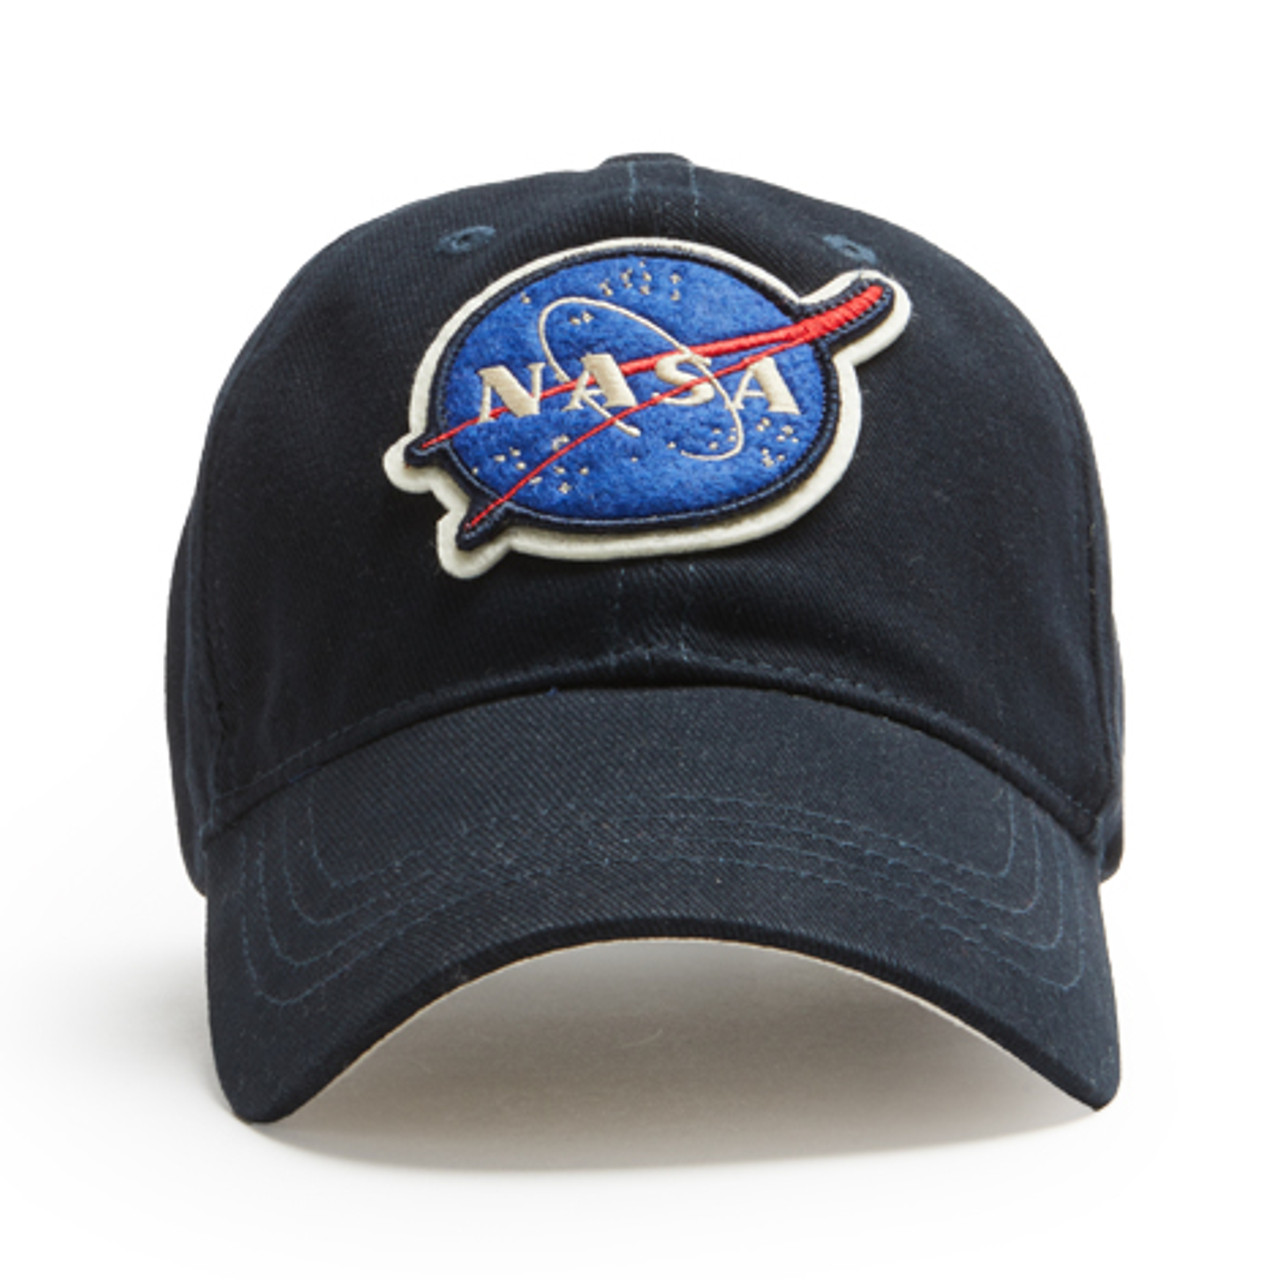 NASA Cap (Navy)